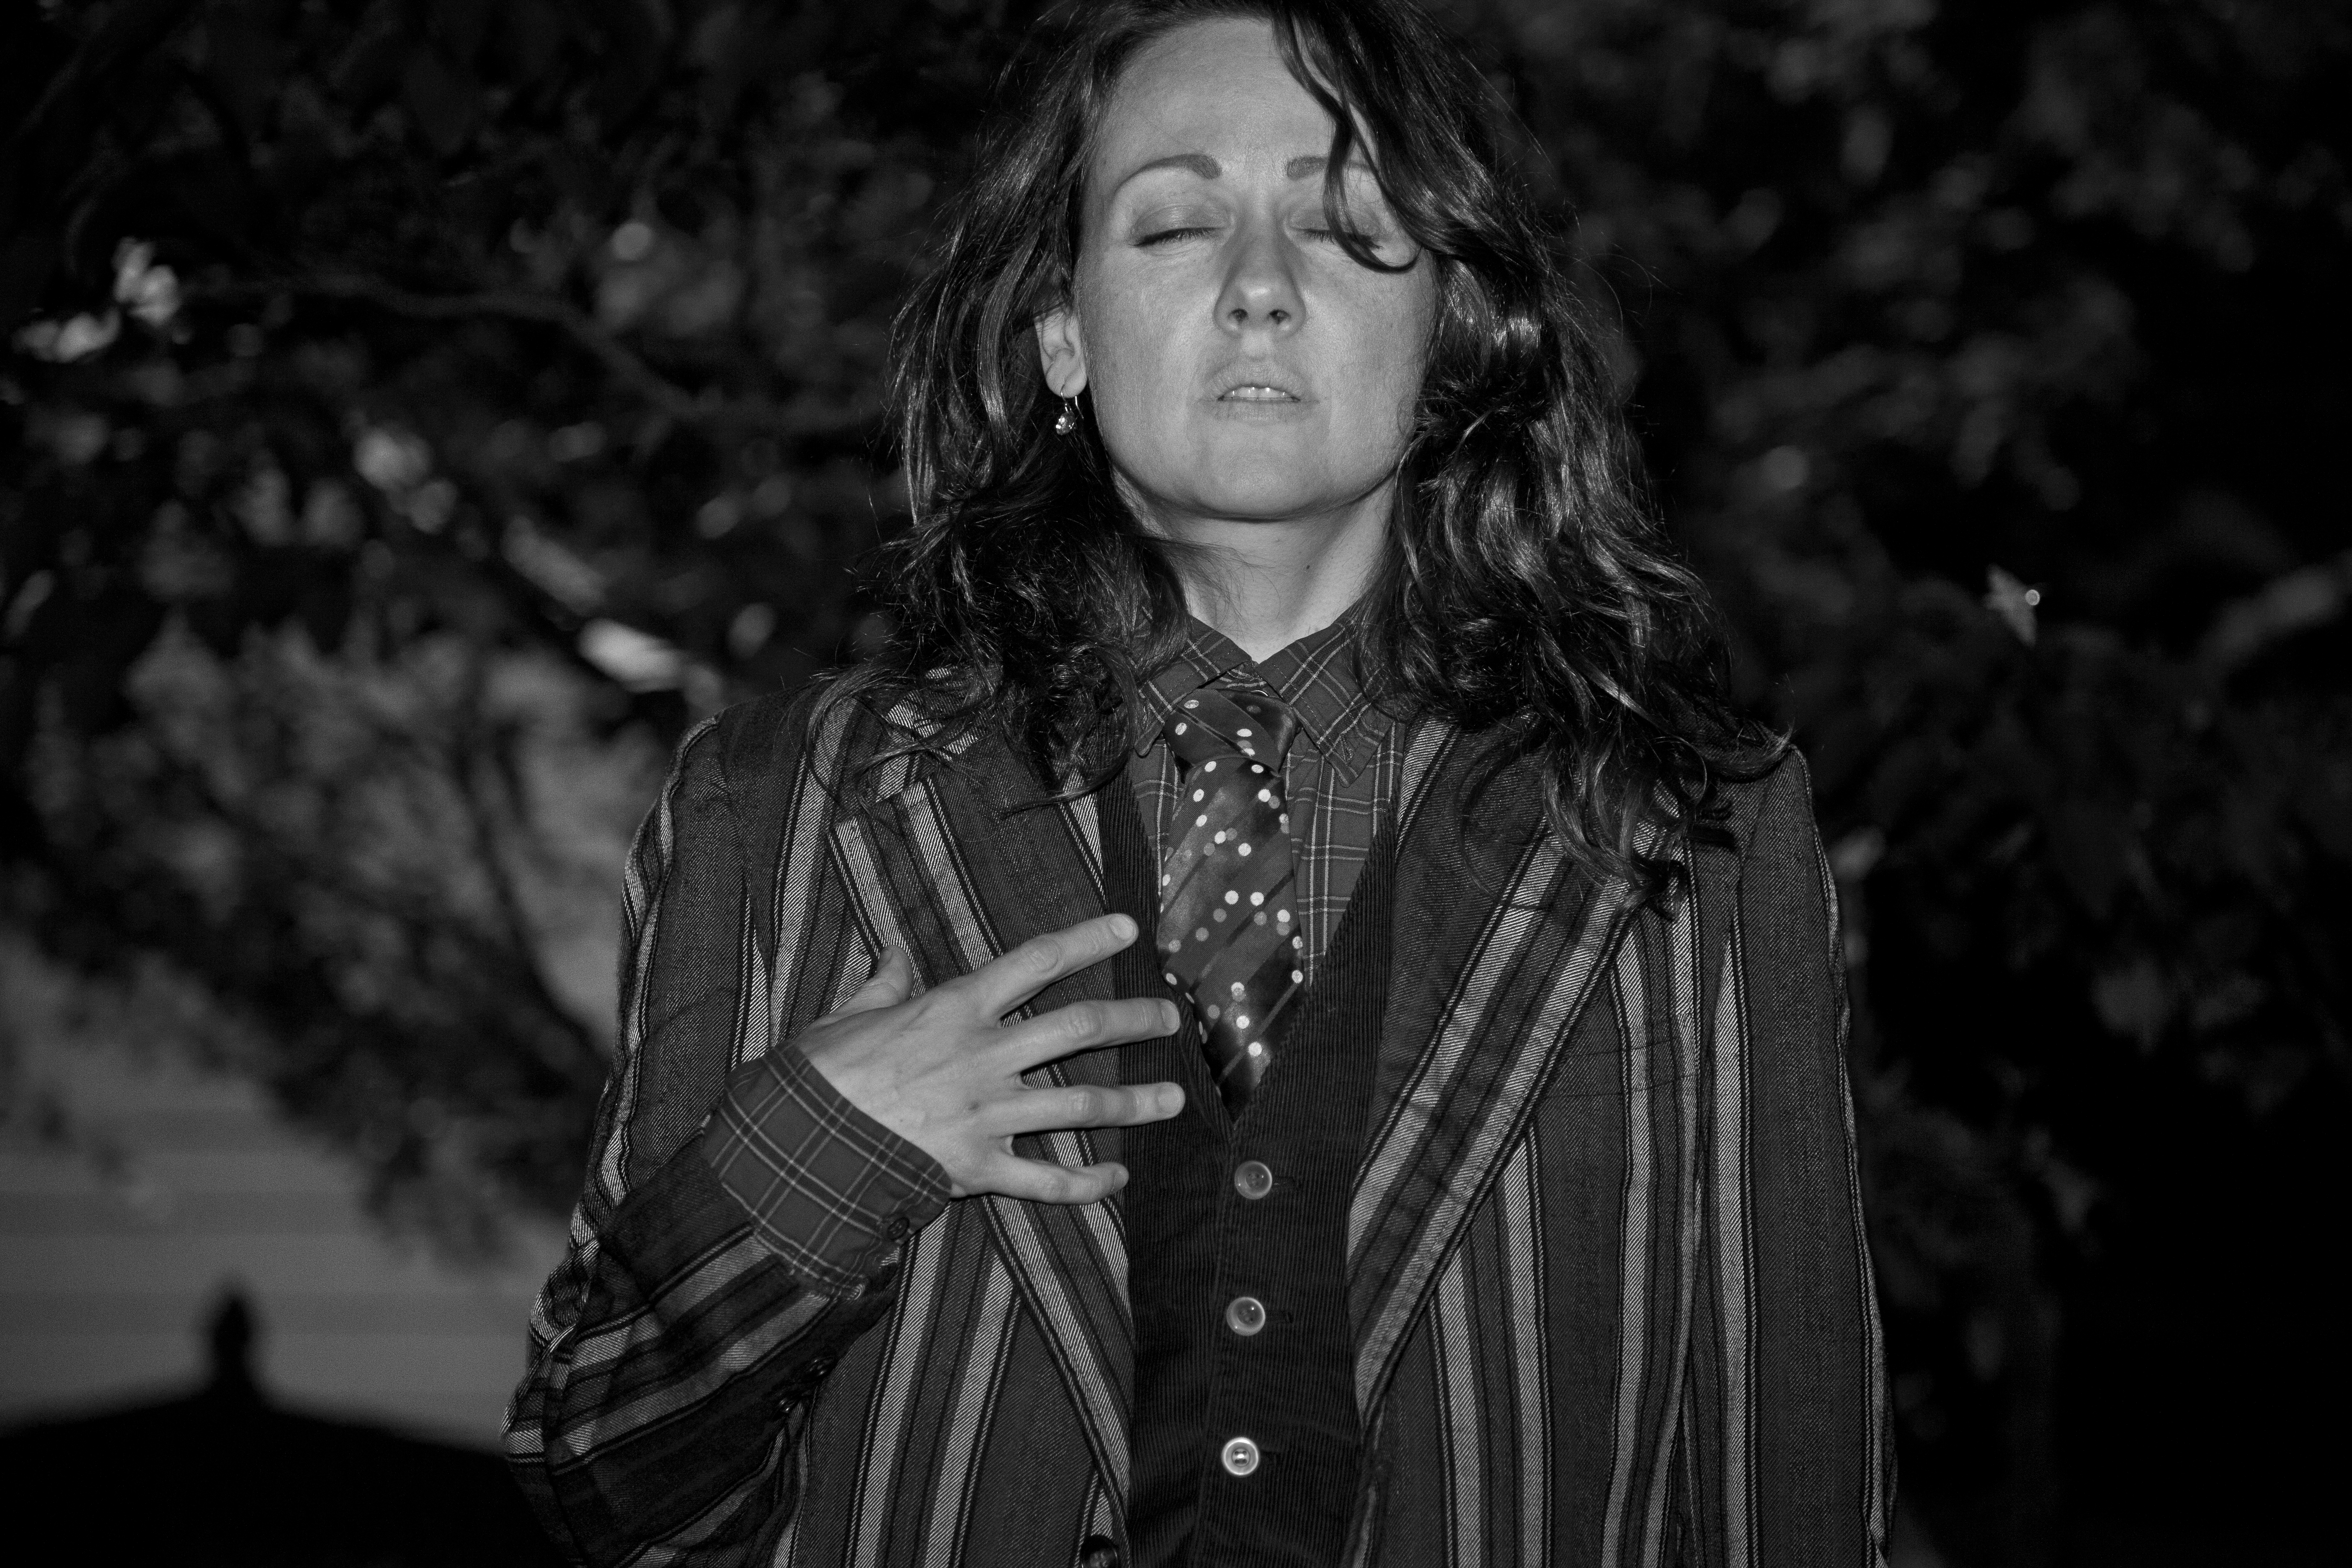 Alison Singing in the Night Garden Baltimore Md 5-2015BW